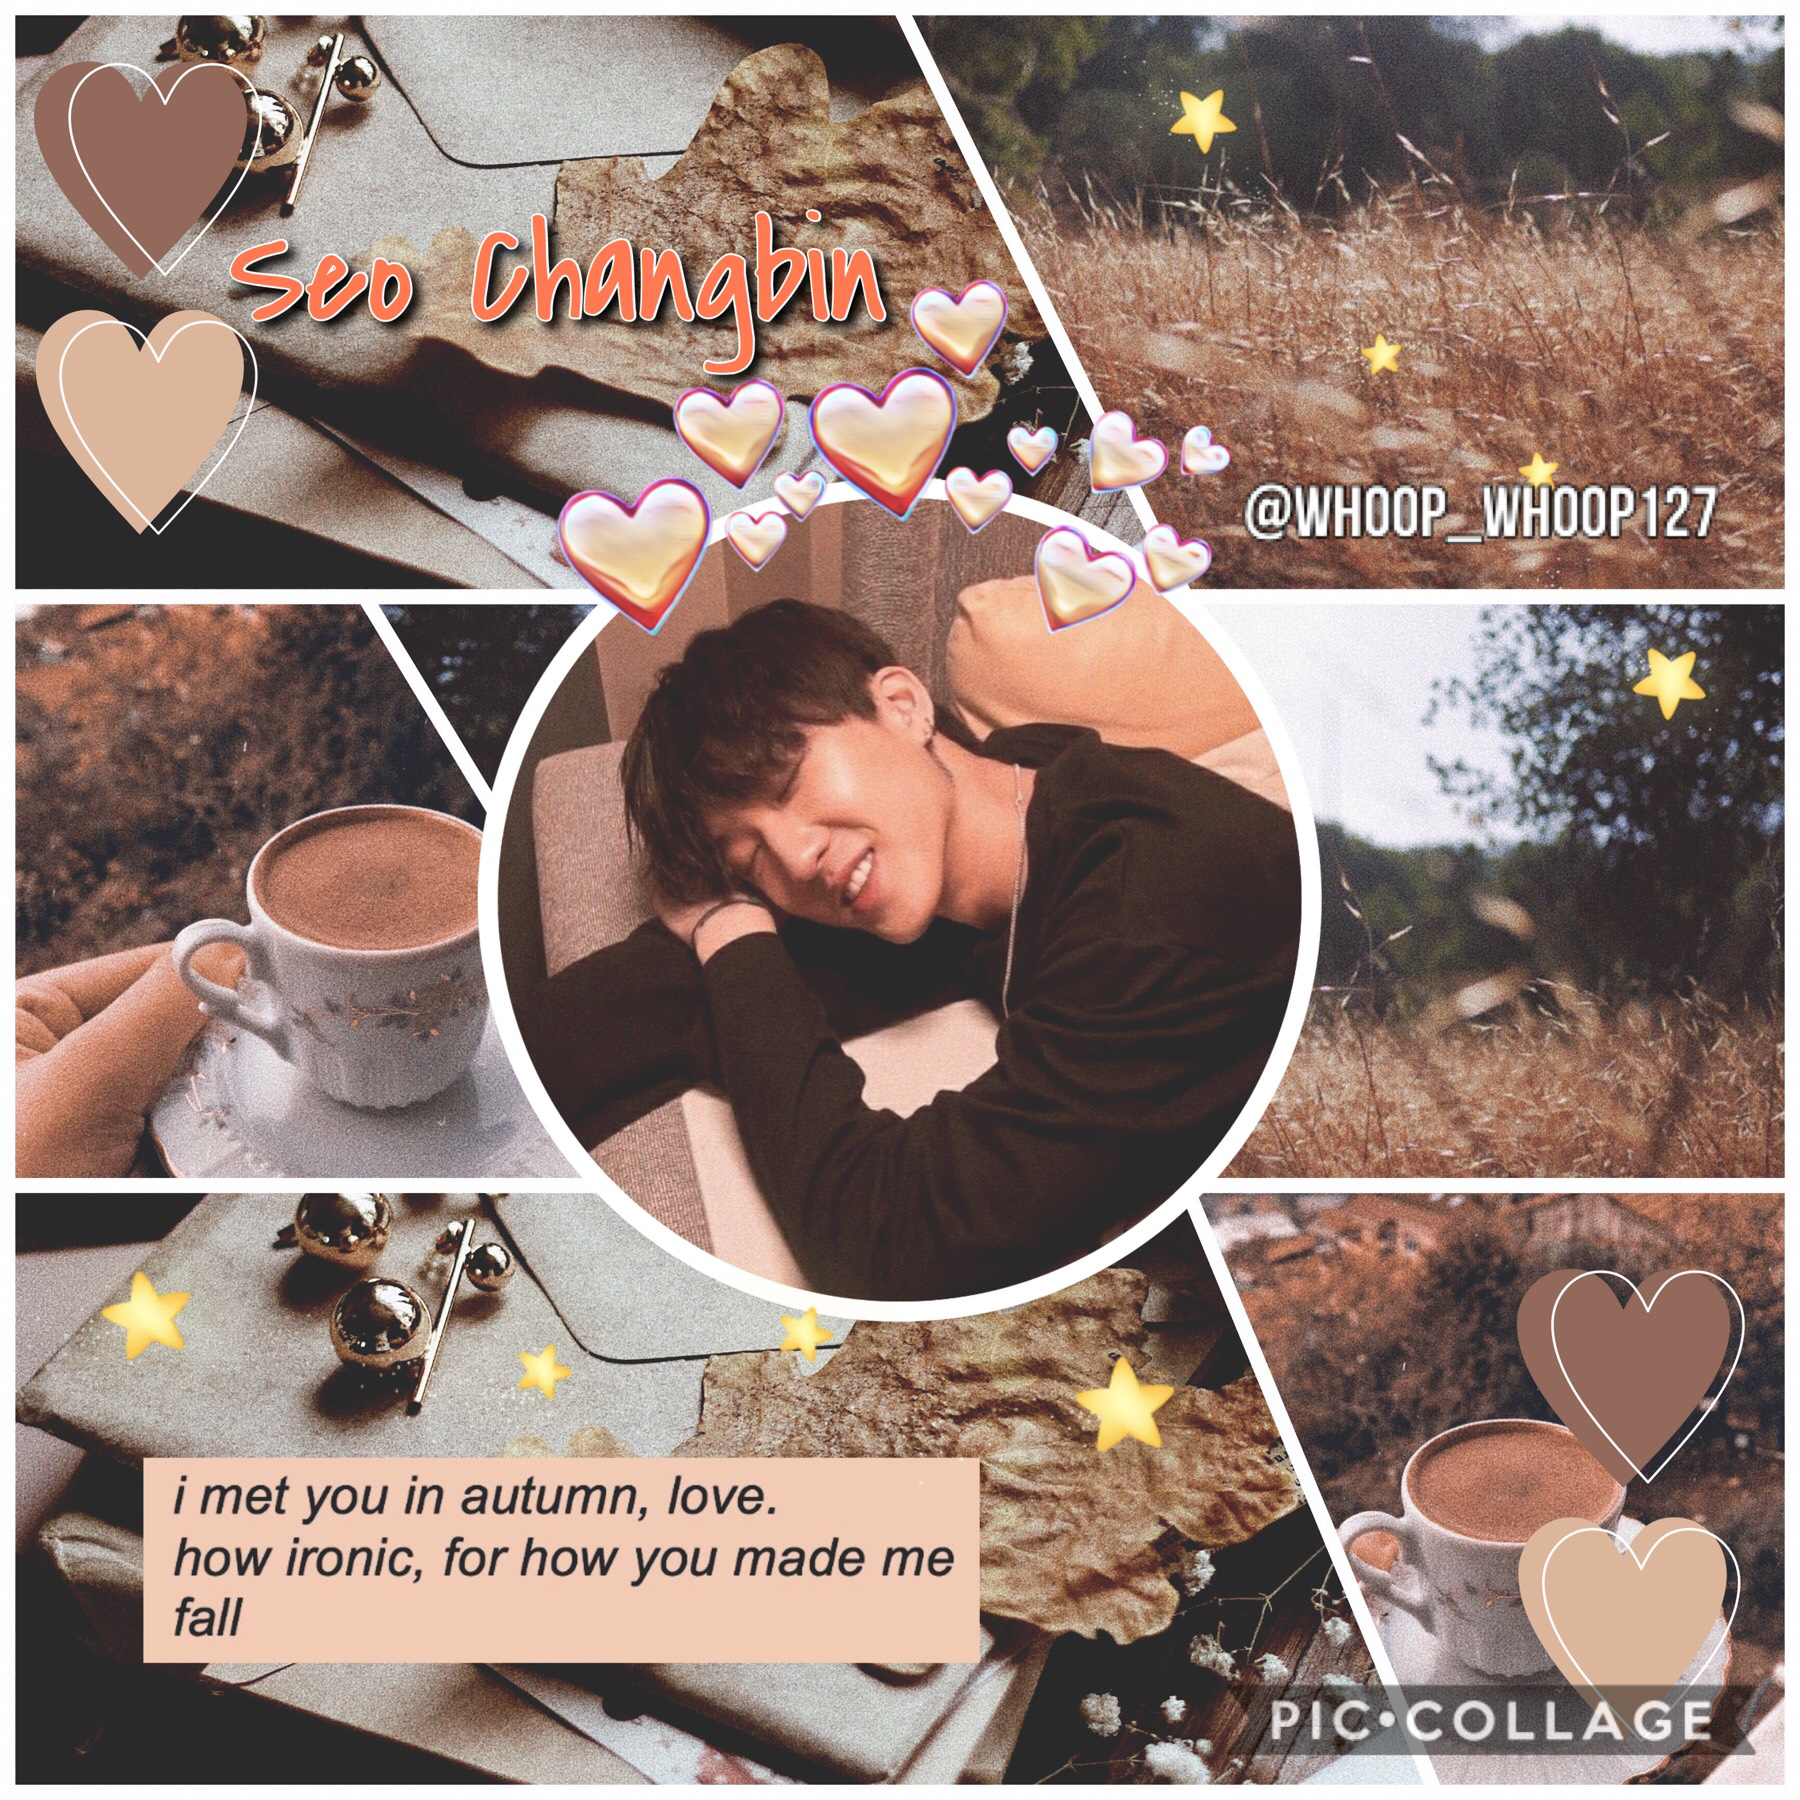 •🚒• 🍂Changbin~Stray Kids🍂 Really vibing with the autumn aesthetics🤙 I'm sure you all heard the news about Hwall leaving The Boyz and Woojin leaving SKZ... I'm still extremely shocked and sad but we got to support them no matter what❤️ SKZ 9 or none :') *D